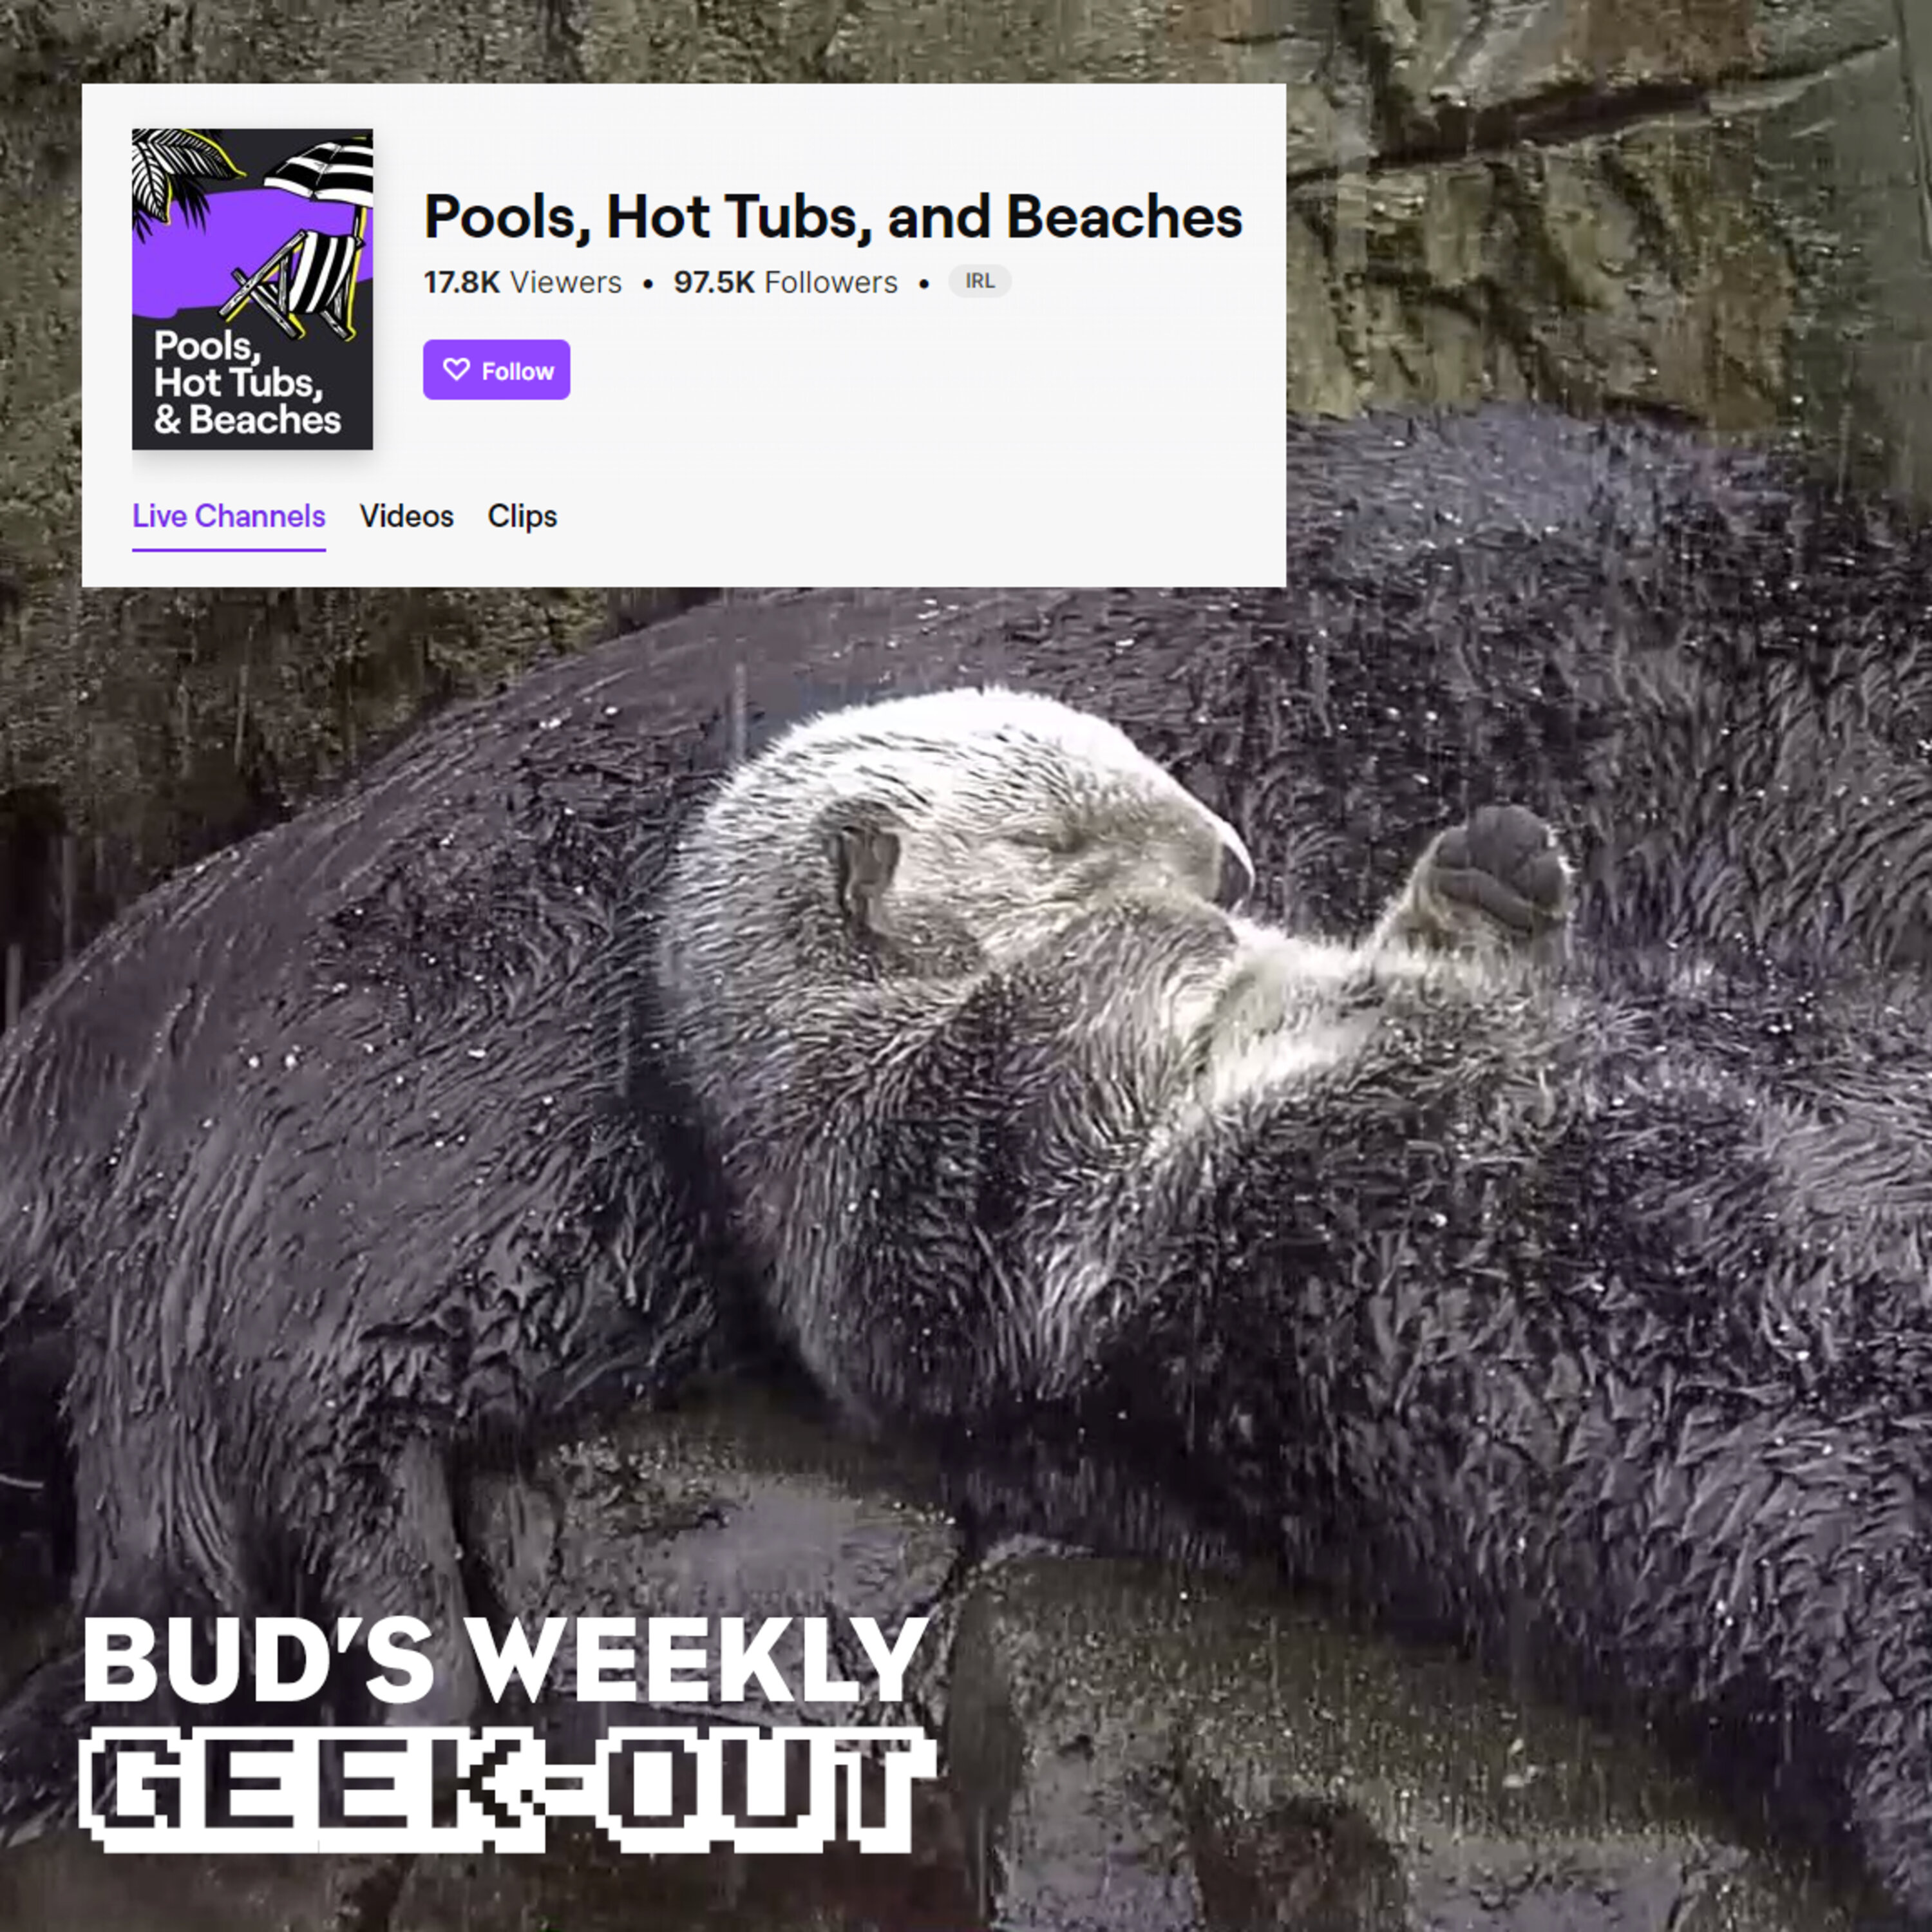 Bud's Weekly Geek-out! 20210602 - Twitch and hot tub meta